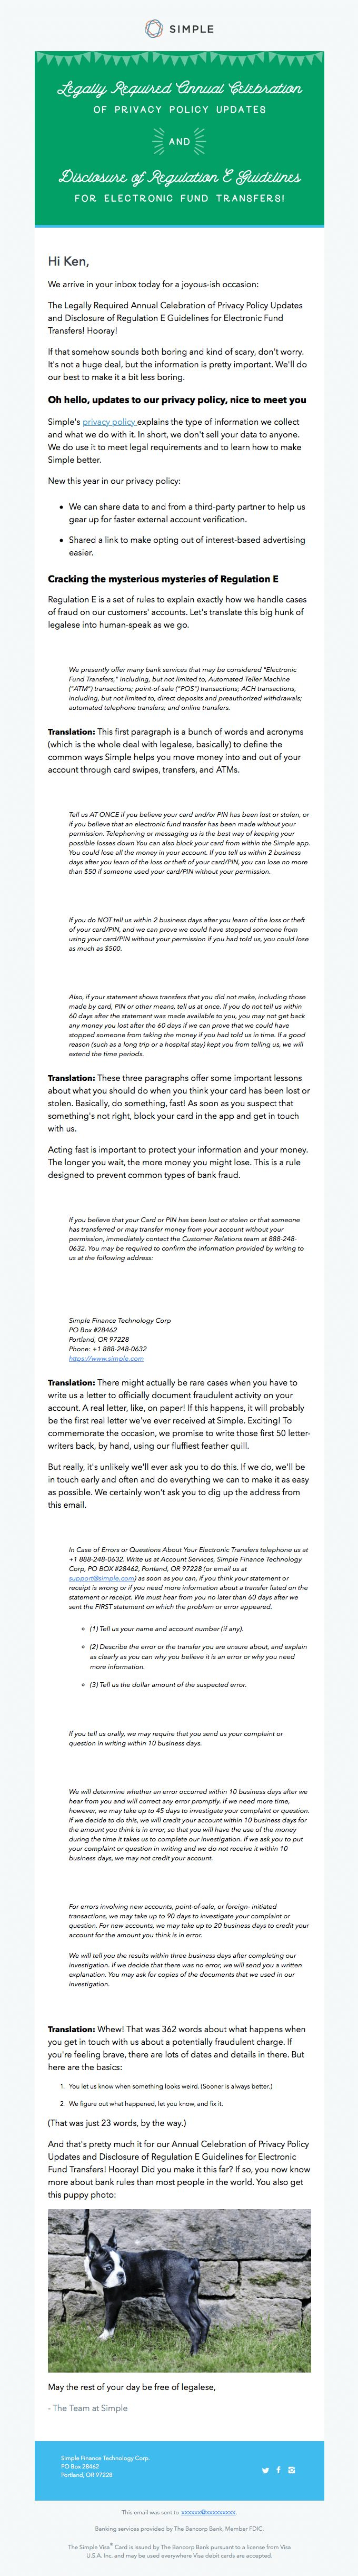 Great privacy policy update email from Simple - Really Good Emails